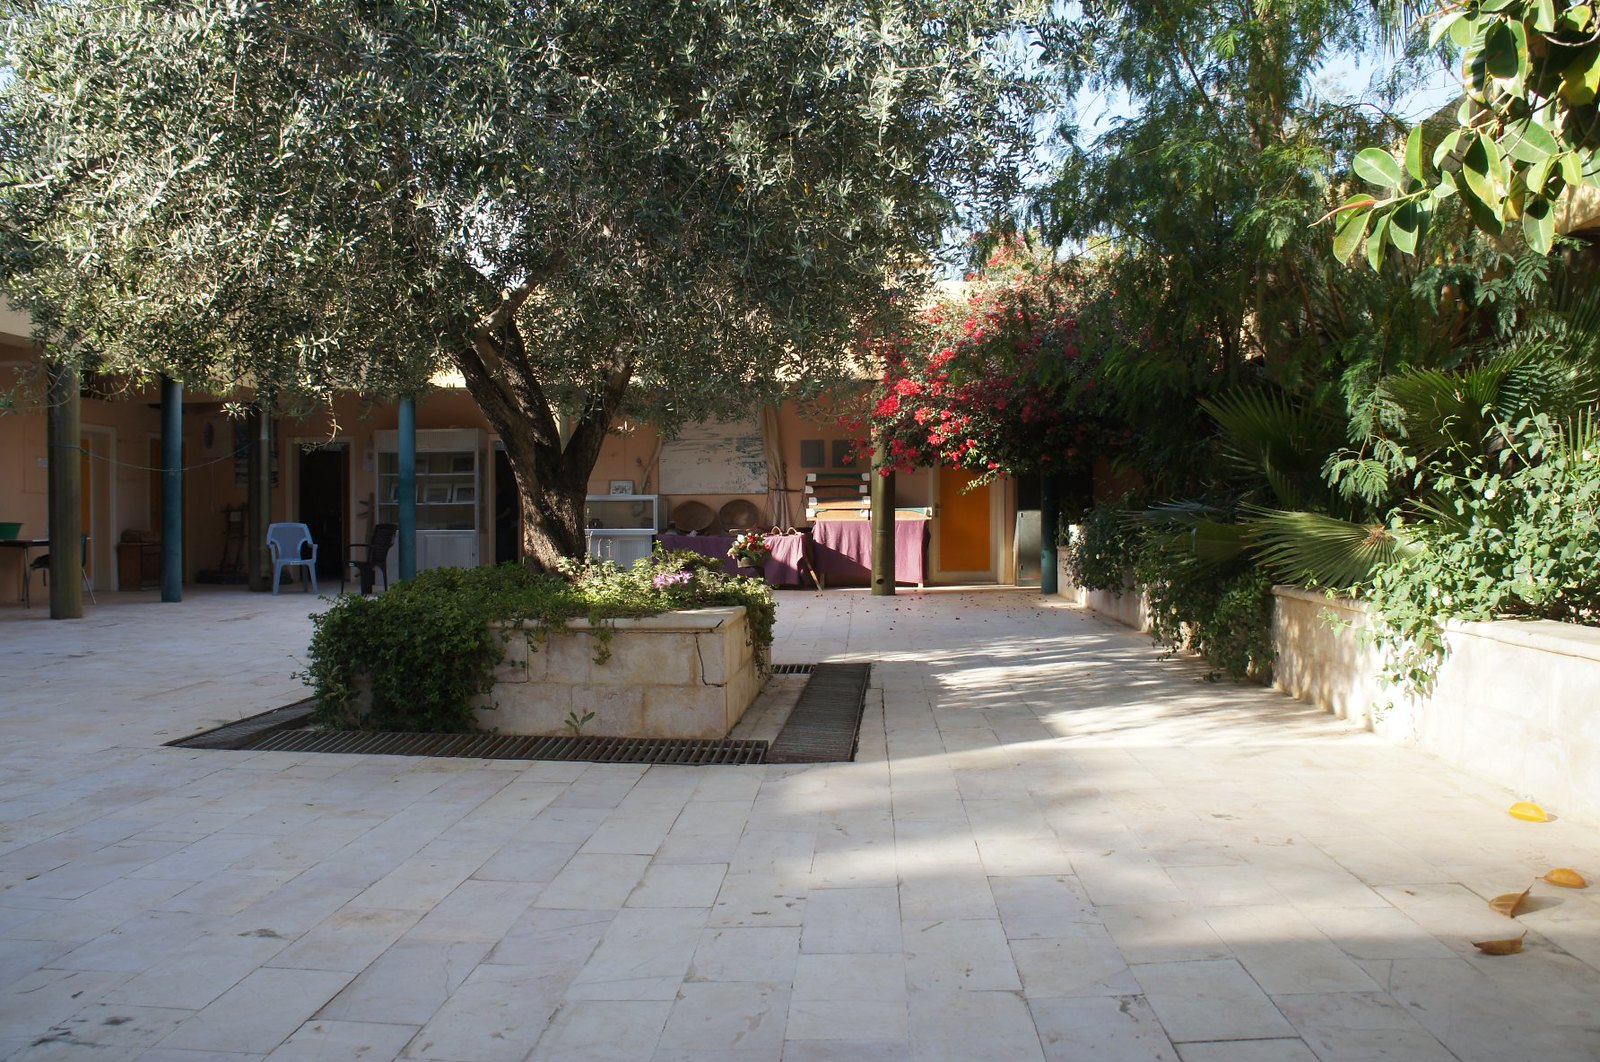 The courtyard of the dig station.